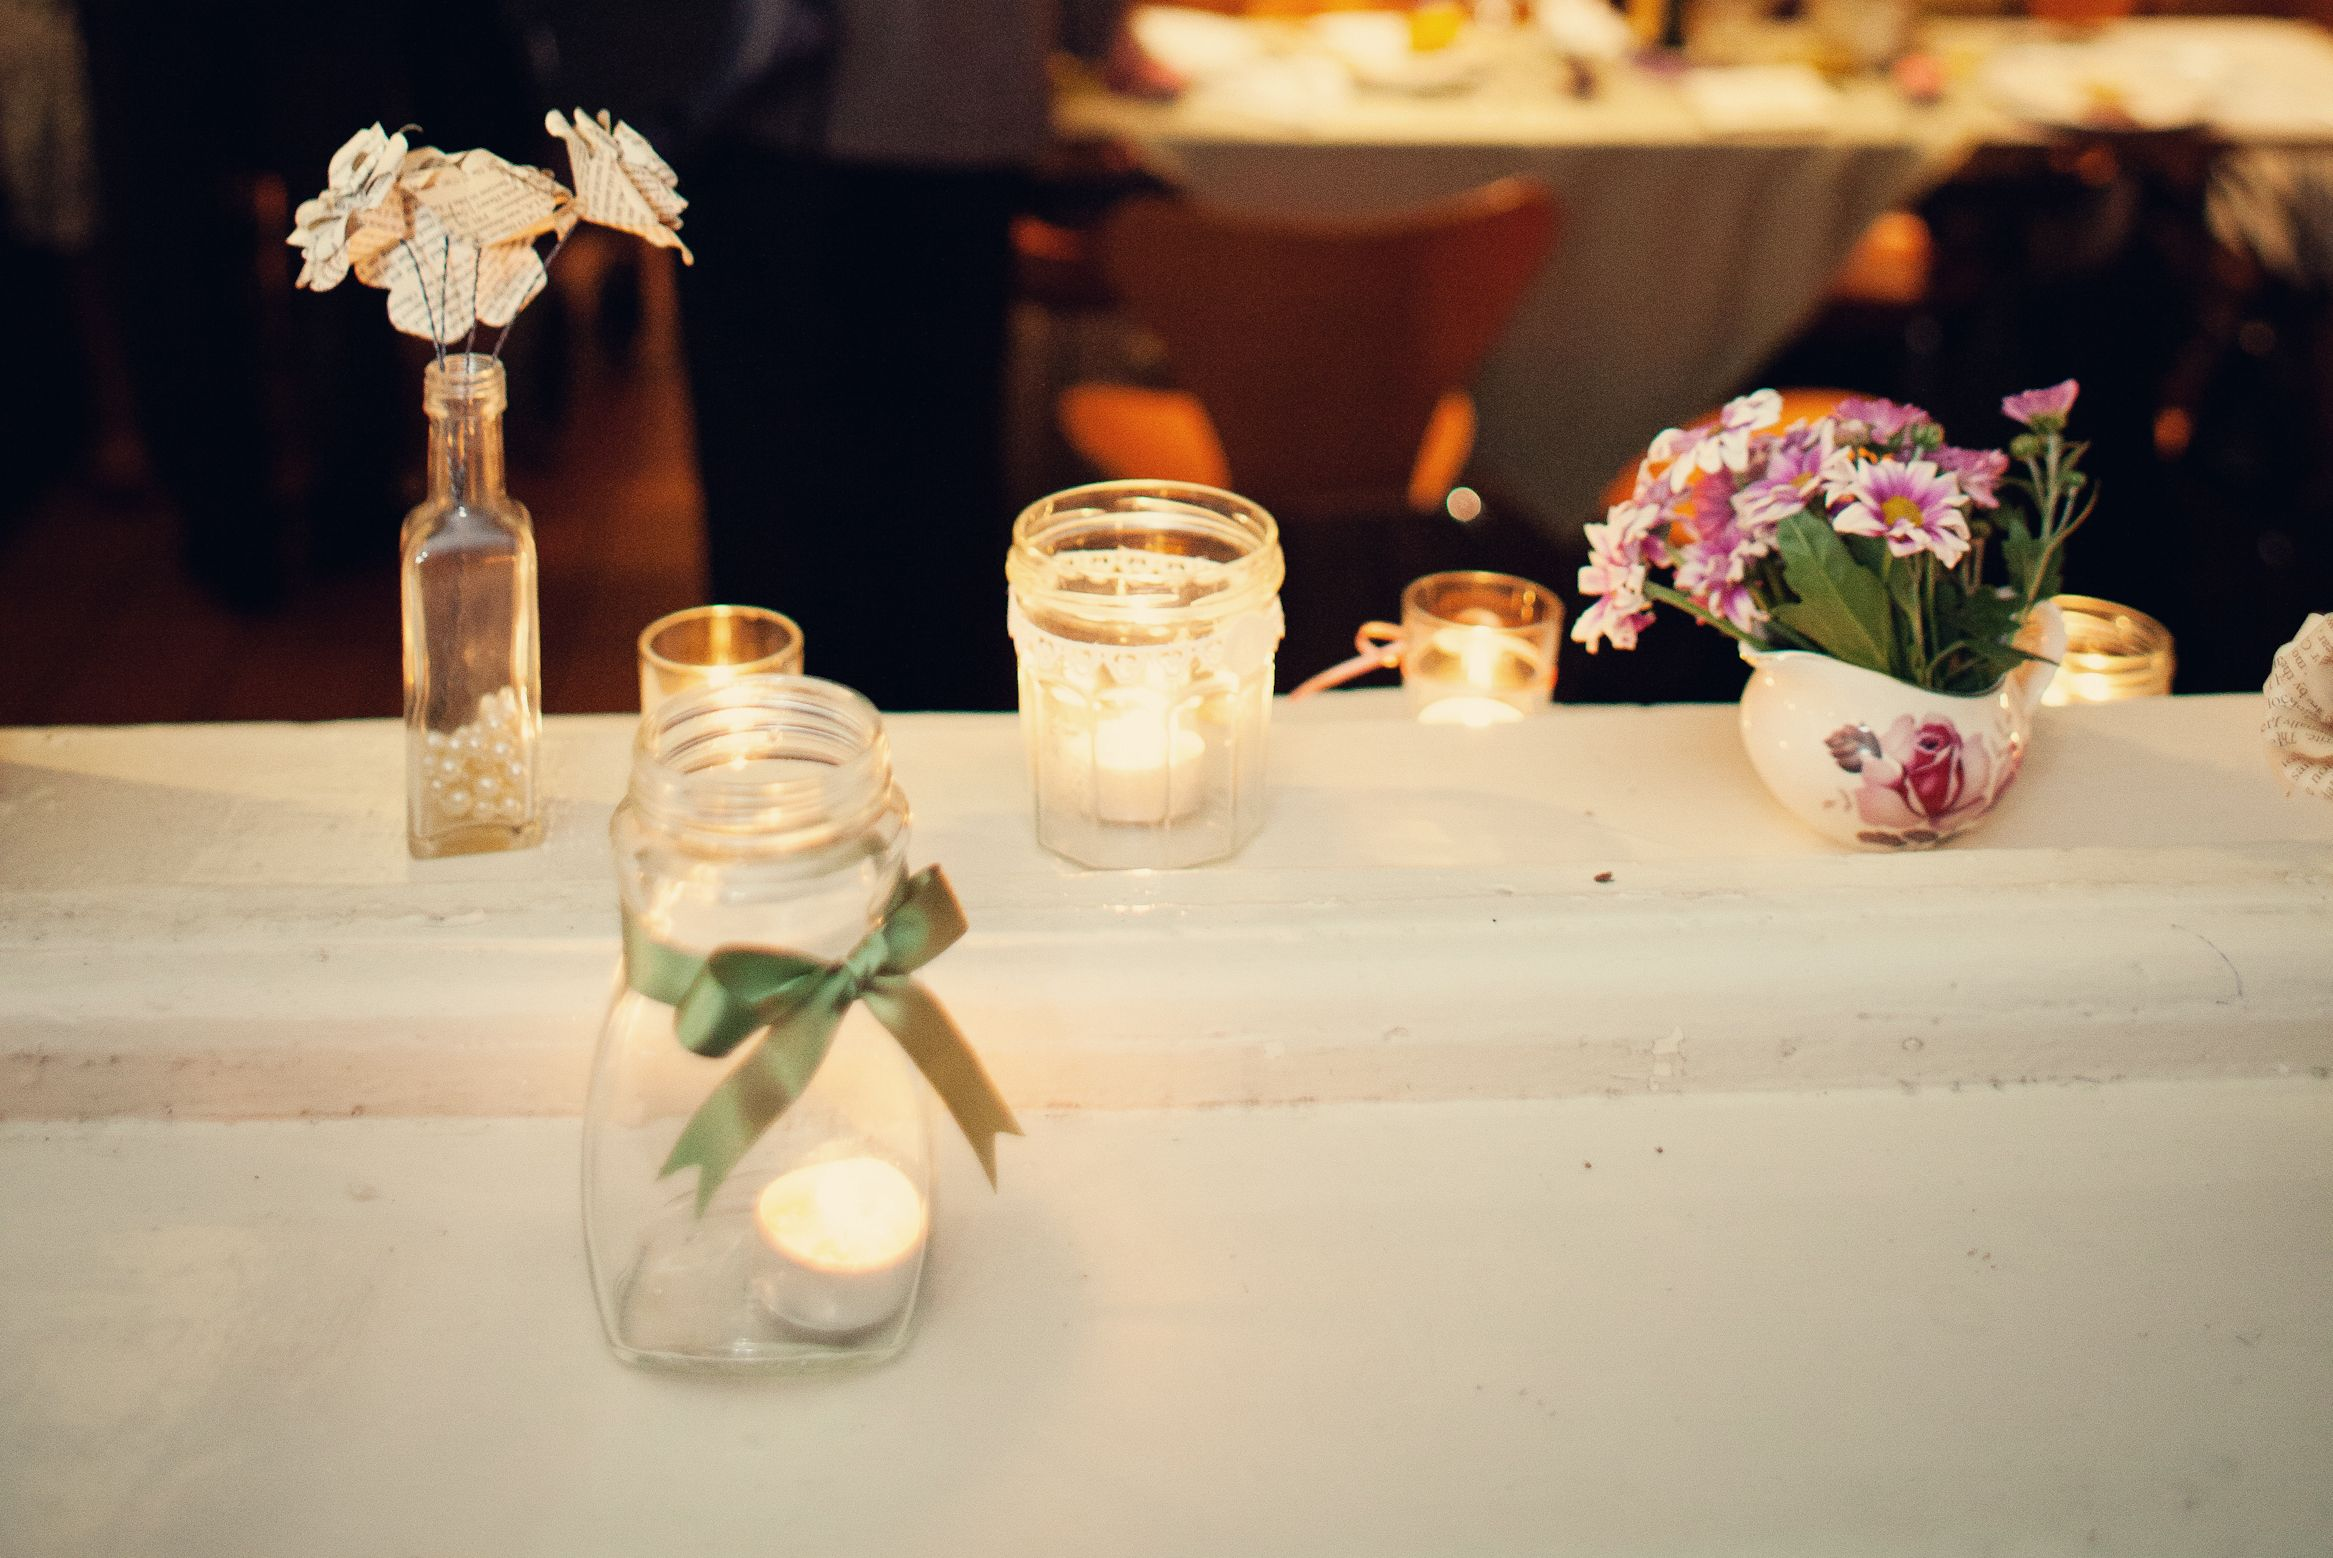 Learn To Make Handmade Wedding Decorations Paper Flowers From Old